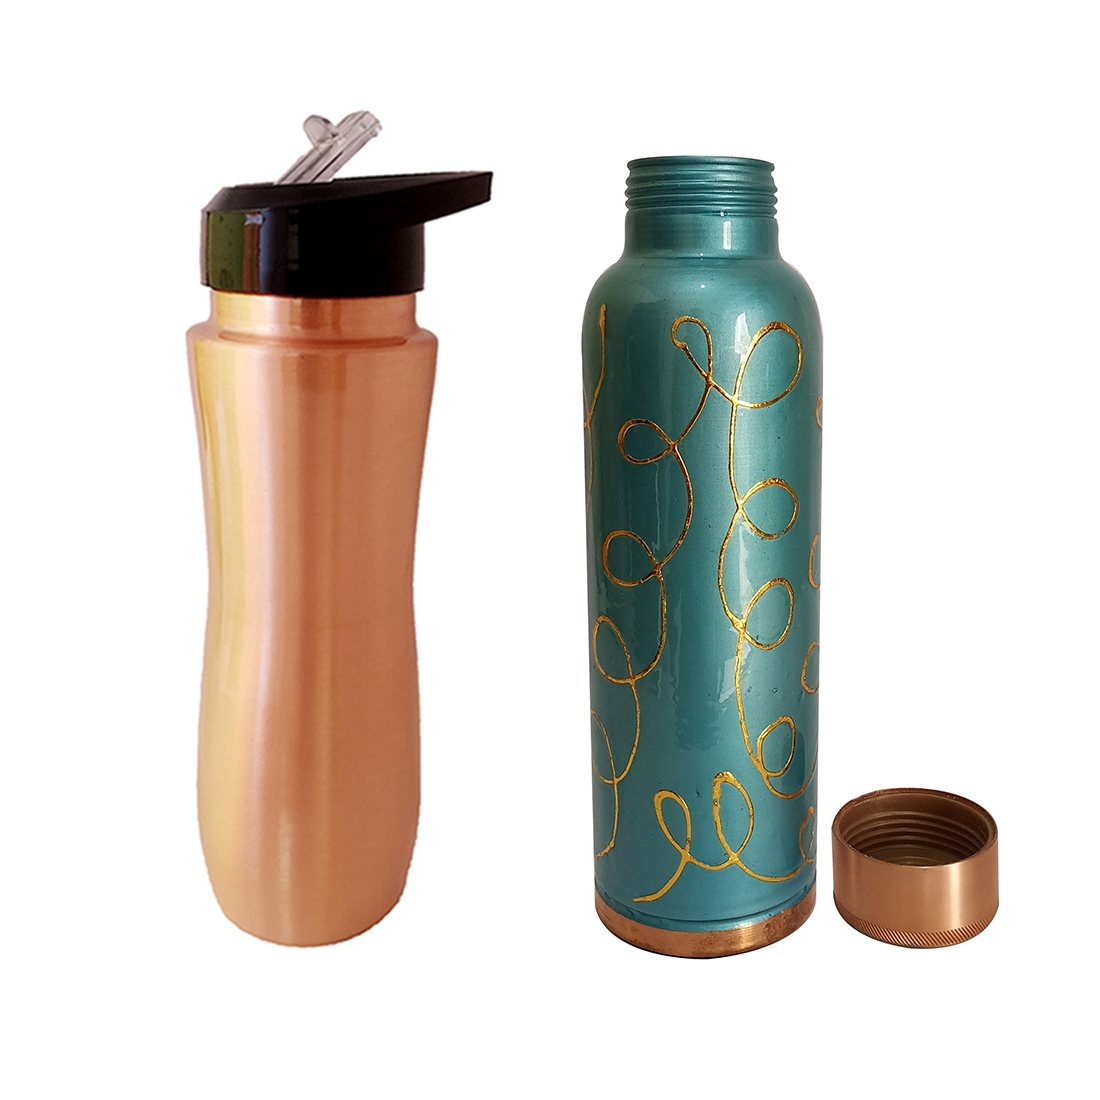 1 Sipper 750Ml and 1 Copper Bottle 750Ml - sports sipper 750ML Meena Firozi Copper Rounded Bottle 750ml